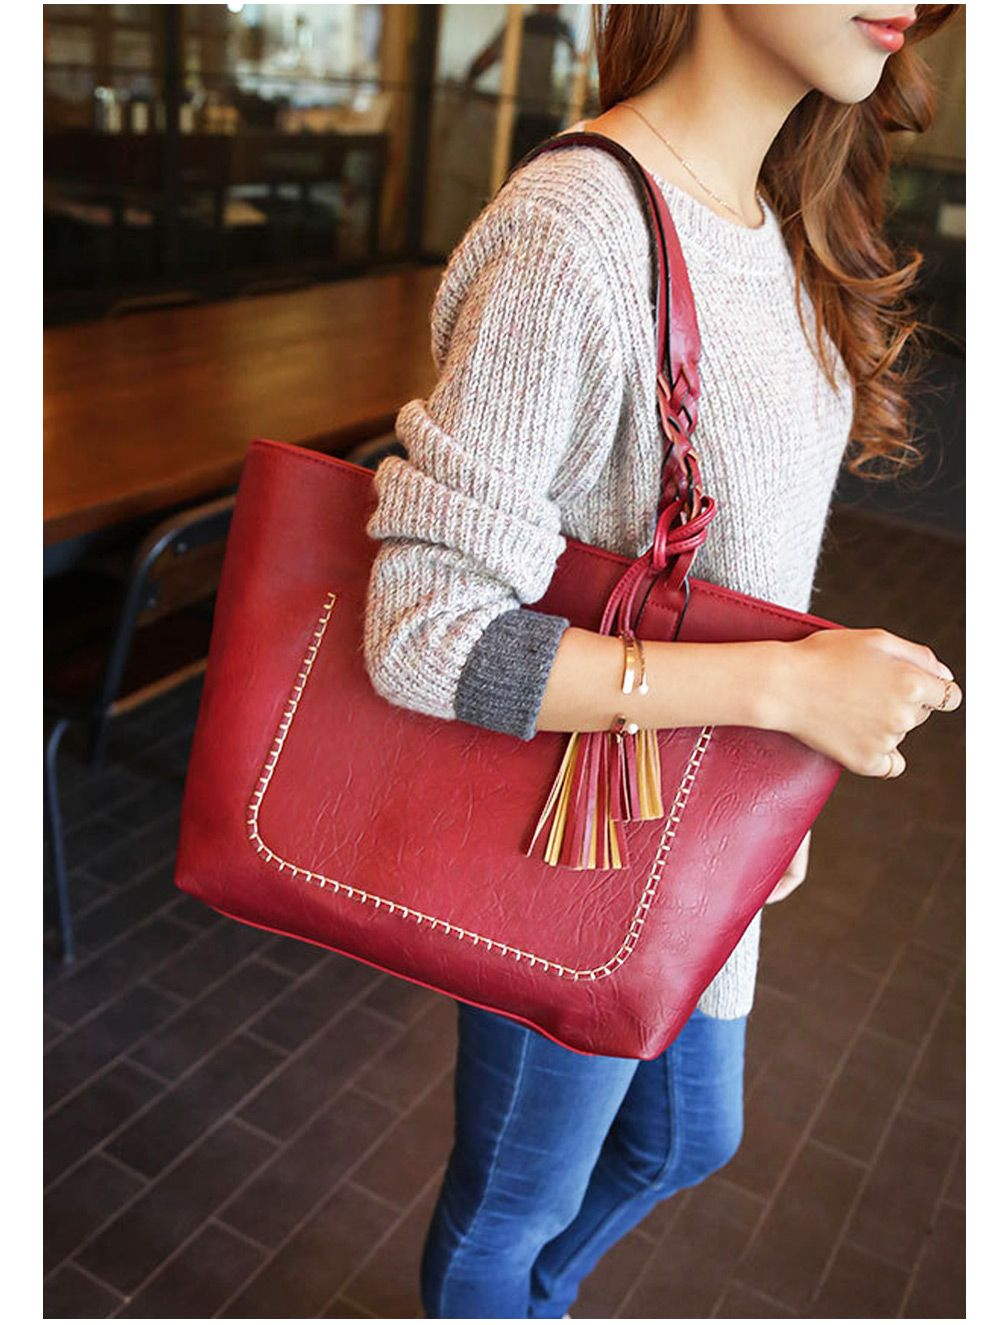 Fashion Retro Fringed Solid Color Handbag Tote Shoulder Messenger Crossbody Bag for Women